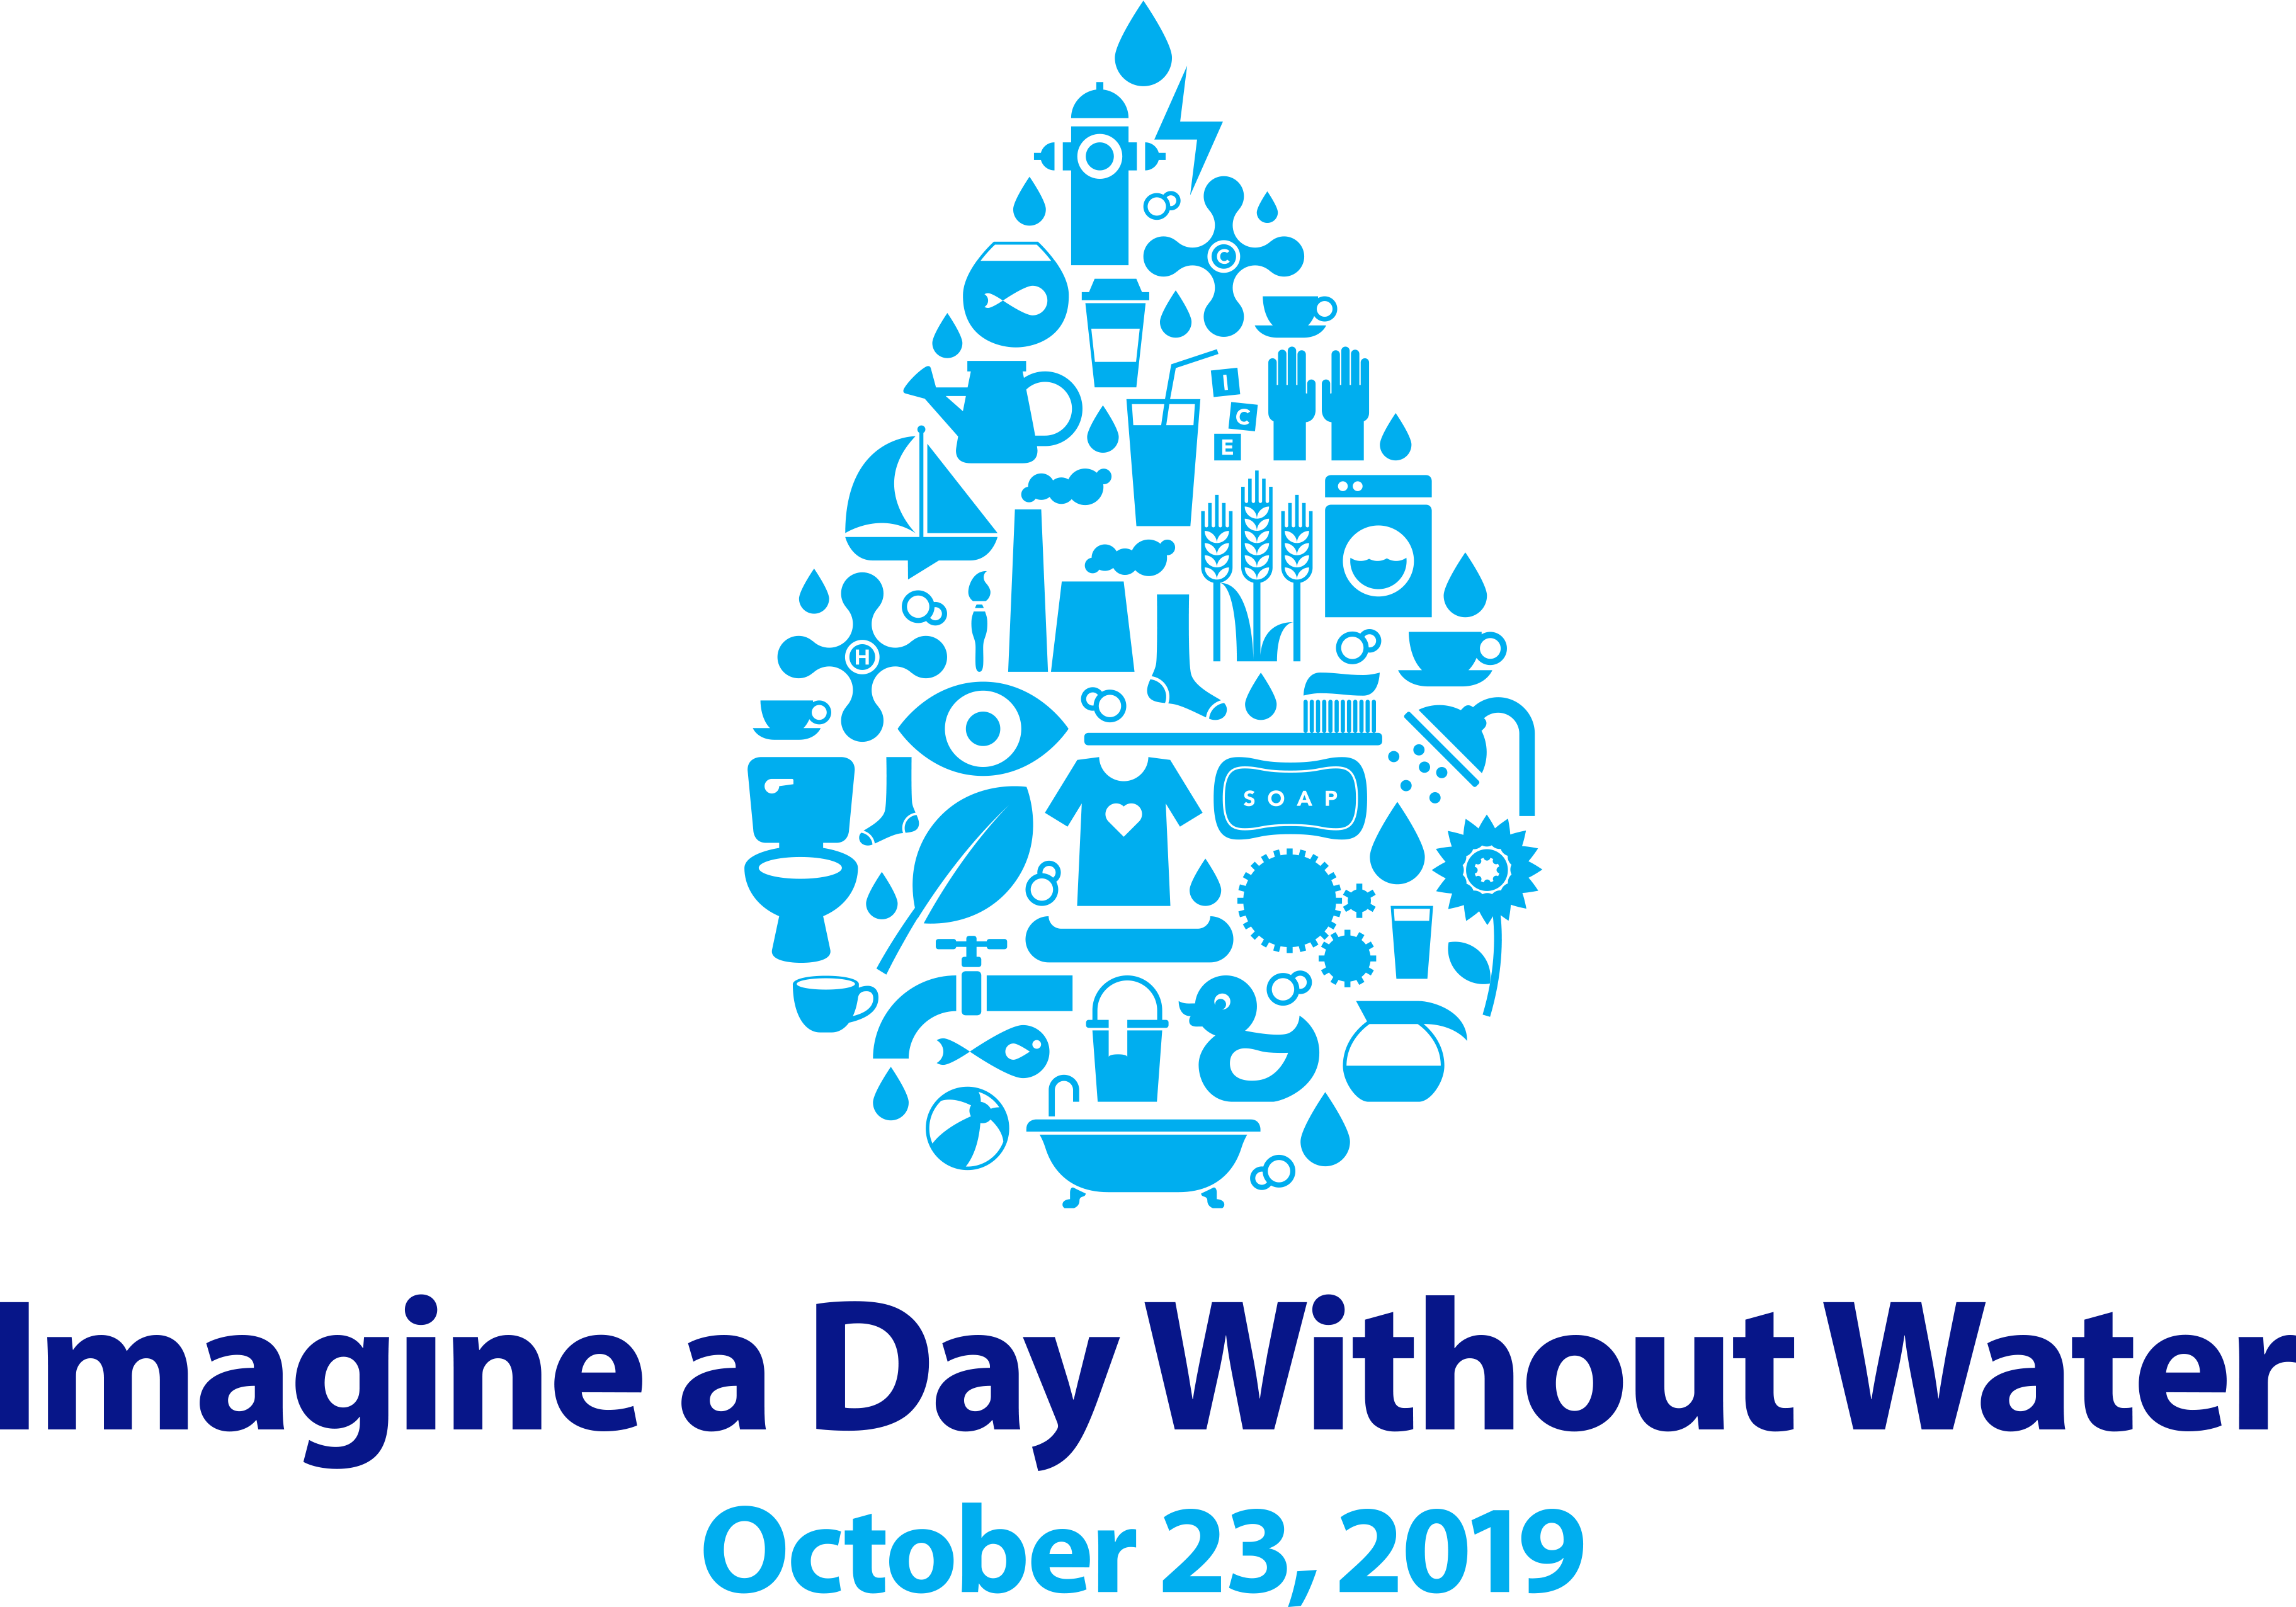 imagine a day without water campaign 2019